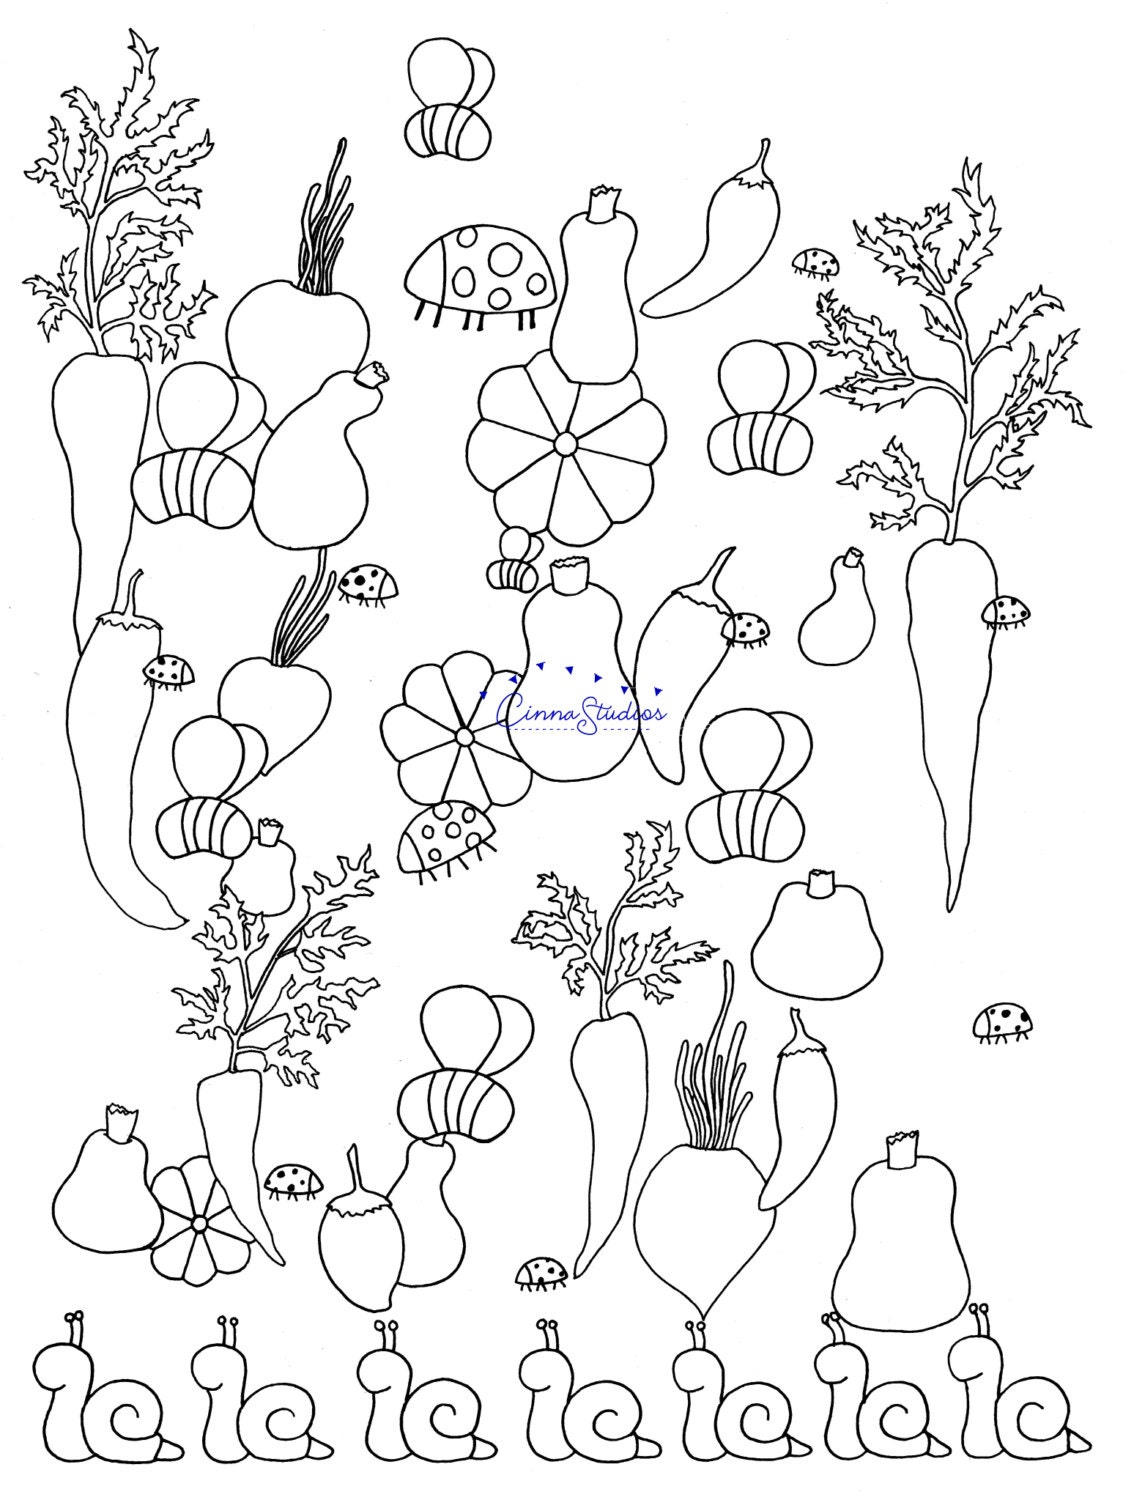 Vegetables I Coloring Page Adult Download Printable Activities For Kids Hand Drawn PDF